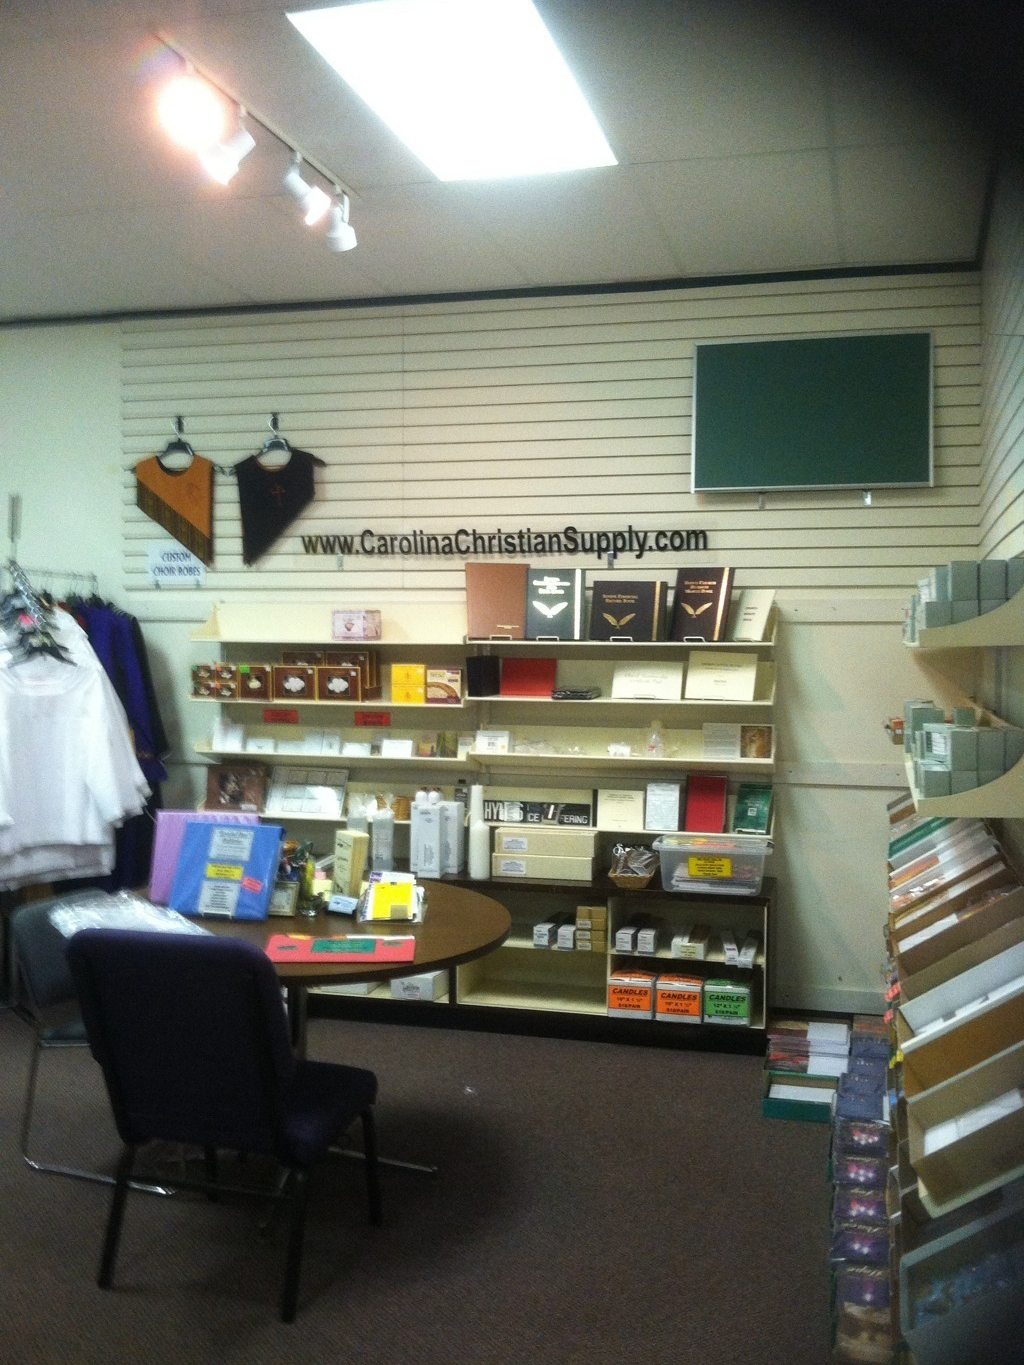 Family Christian Store at Cypresswood Dr, Ste , Houston, TX store location, business hours, driving direction, map, phone number and other services.